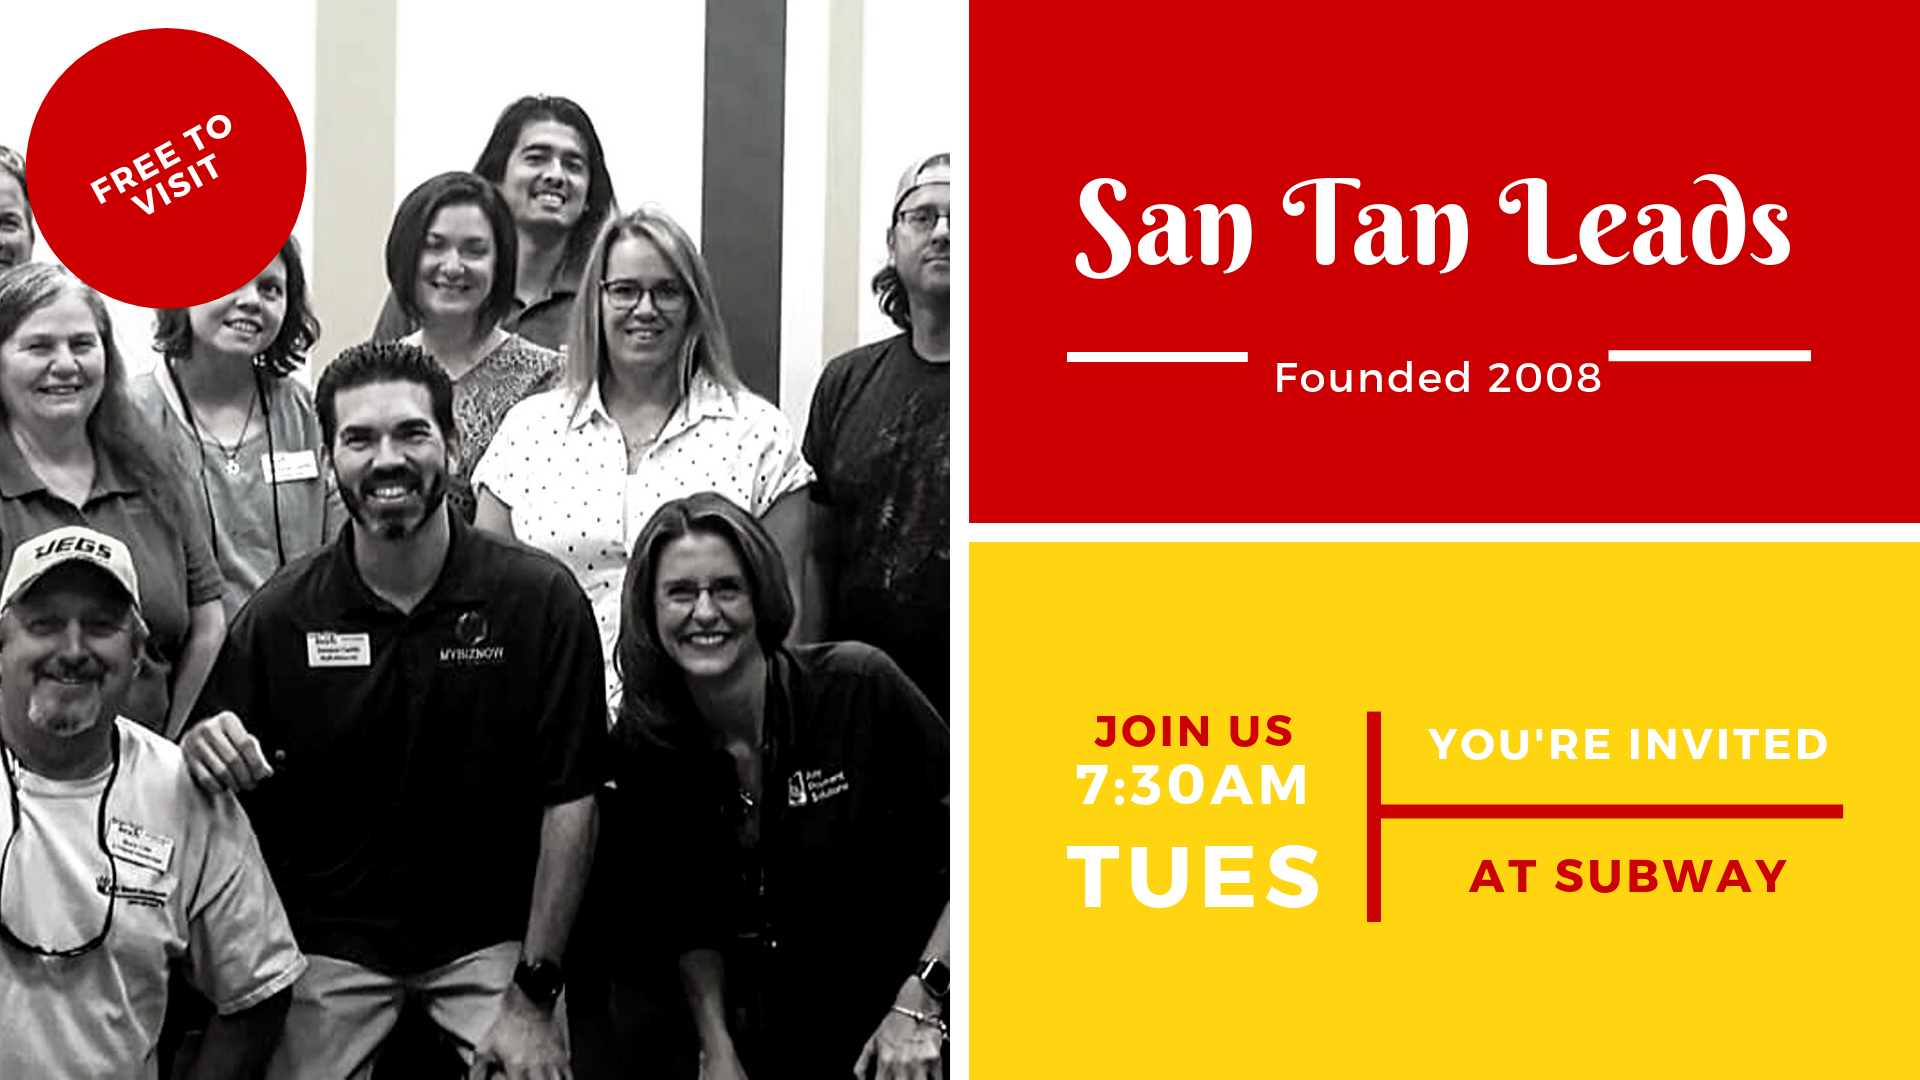 Join us as a guest at San Tan Leads!